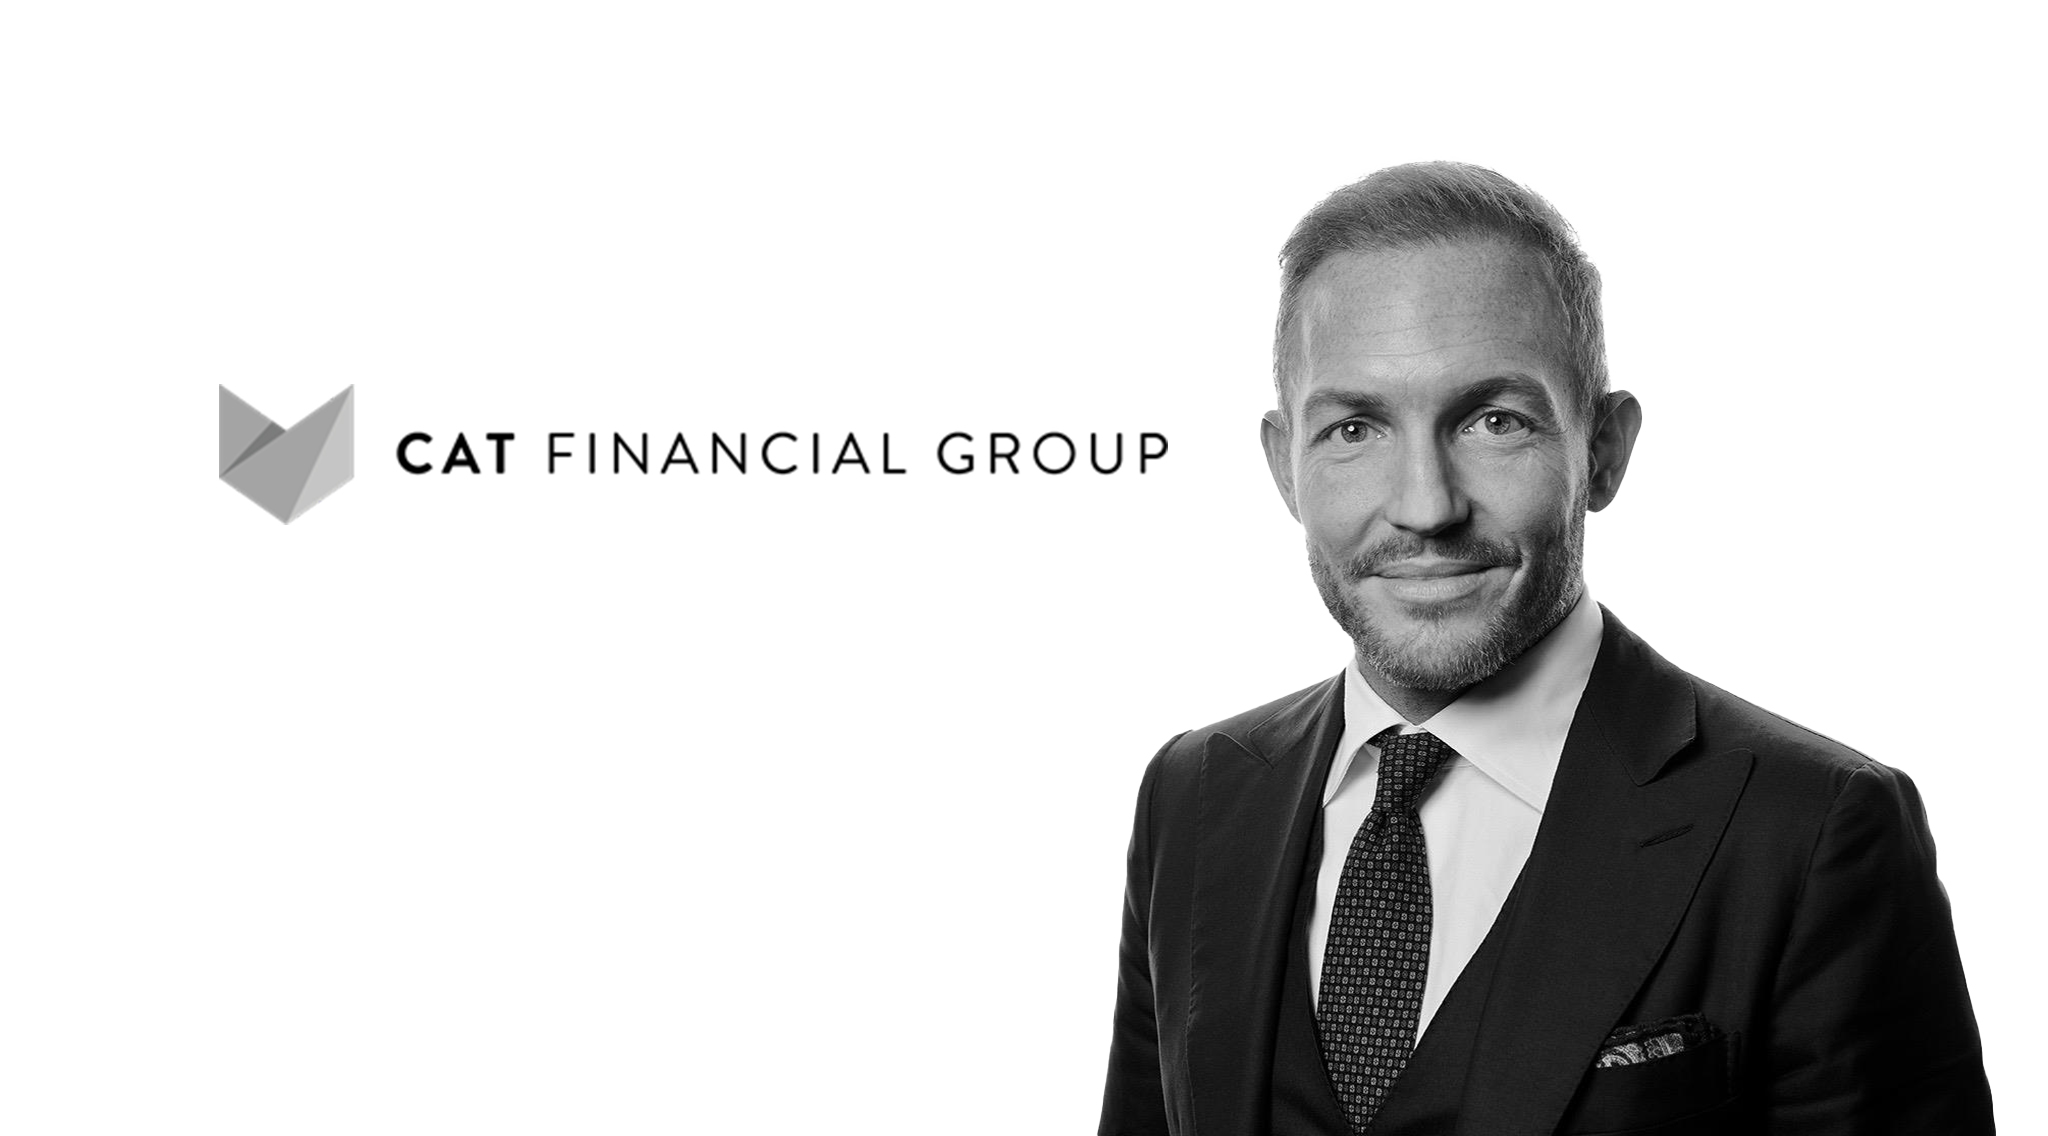 David Schmid Joins the Cat Financial Group as Strategic Partner and Co-Owner